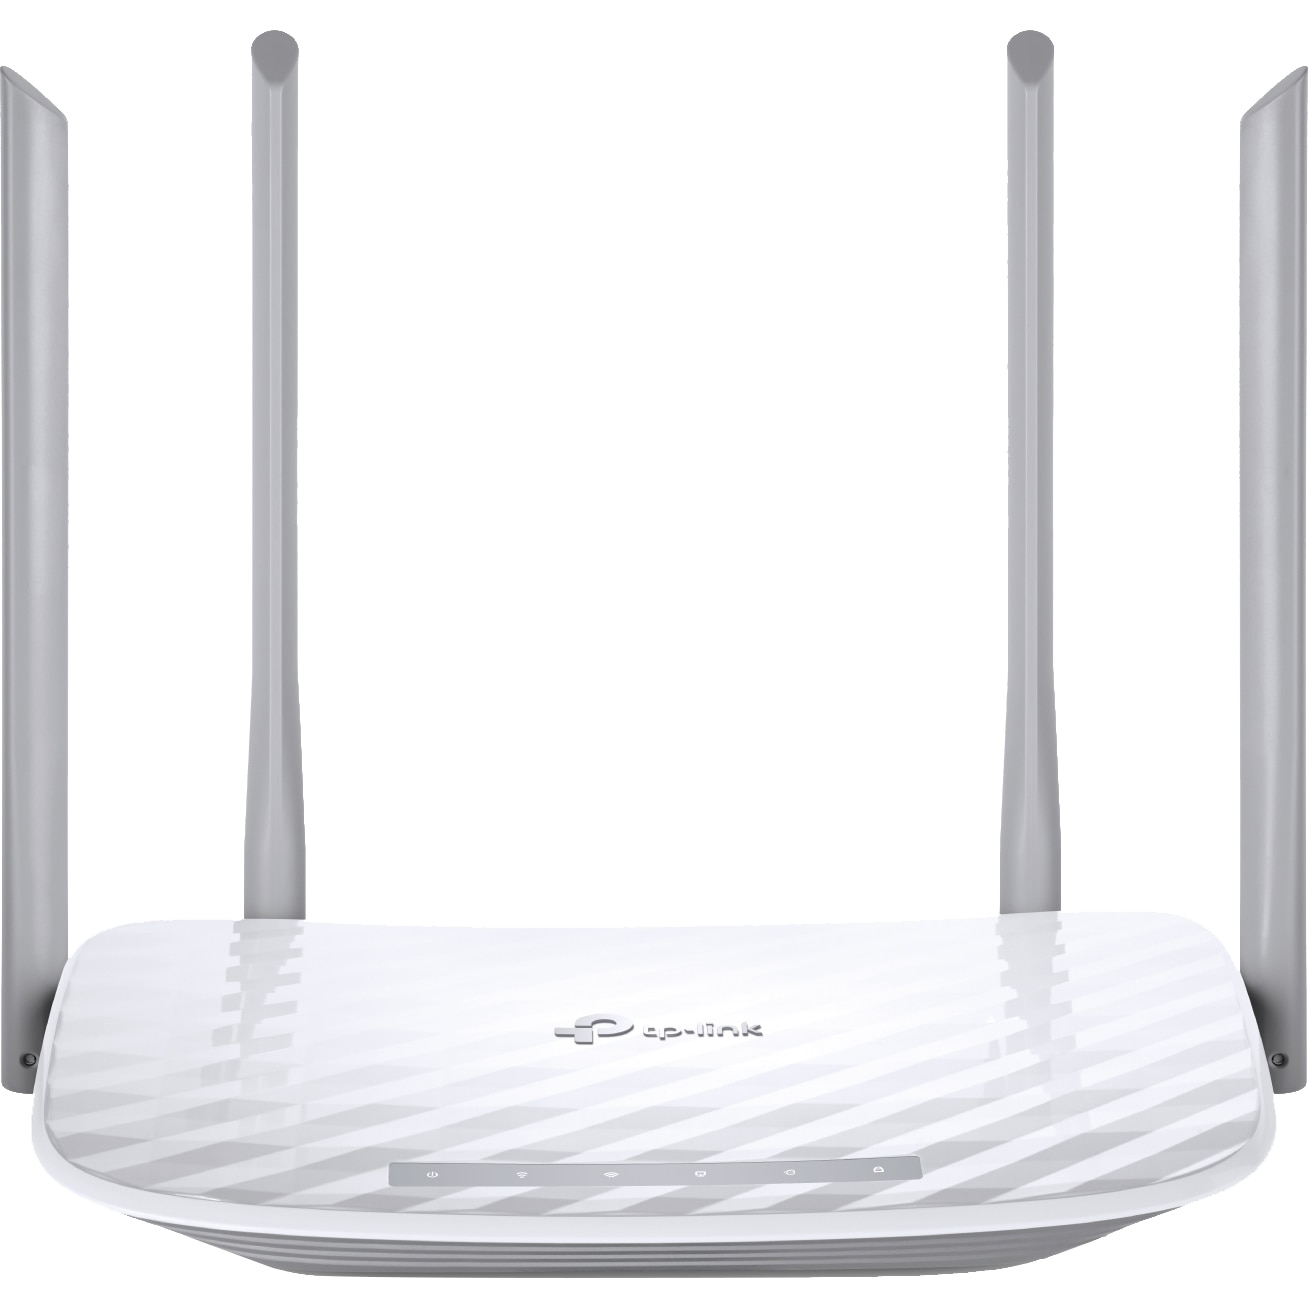 Fotografie Router wireless AC1200 TP-Link Archer C50, Dual Band